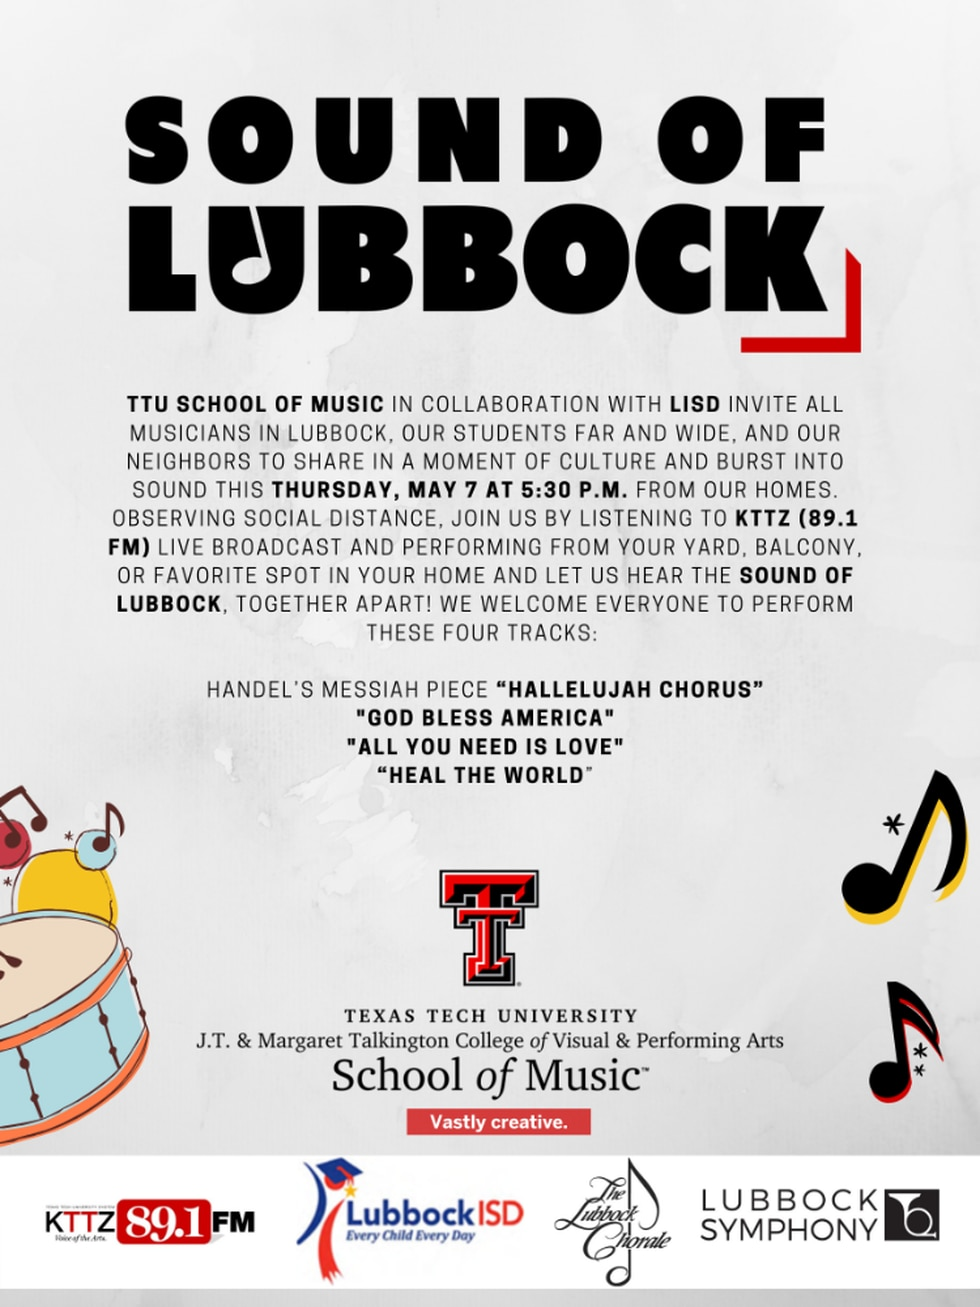 Musicians and performers are asked to join in during the Sound of Lubbock at 5:30 p.m. May 7.